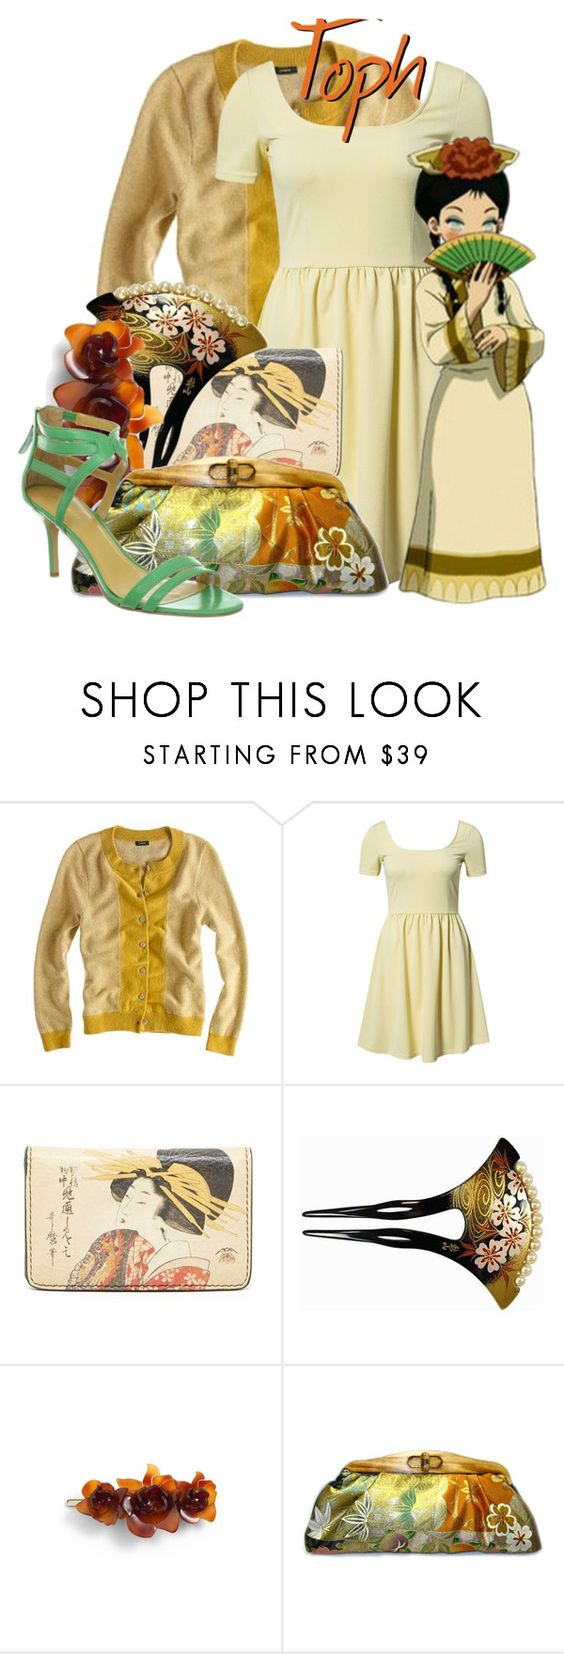 """Toph Beifong from Avatar: The Last Airbender"" by likeghostsinthesnow ❤ liked on Polyvore featuring J.Crew, Vero Moda, Ivanka Trump, Makié, L. Erickson, Uroco and Nine West"